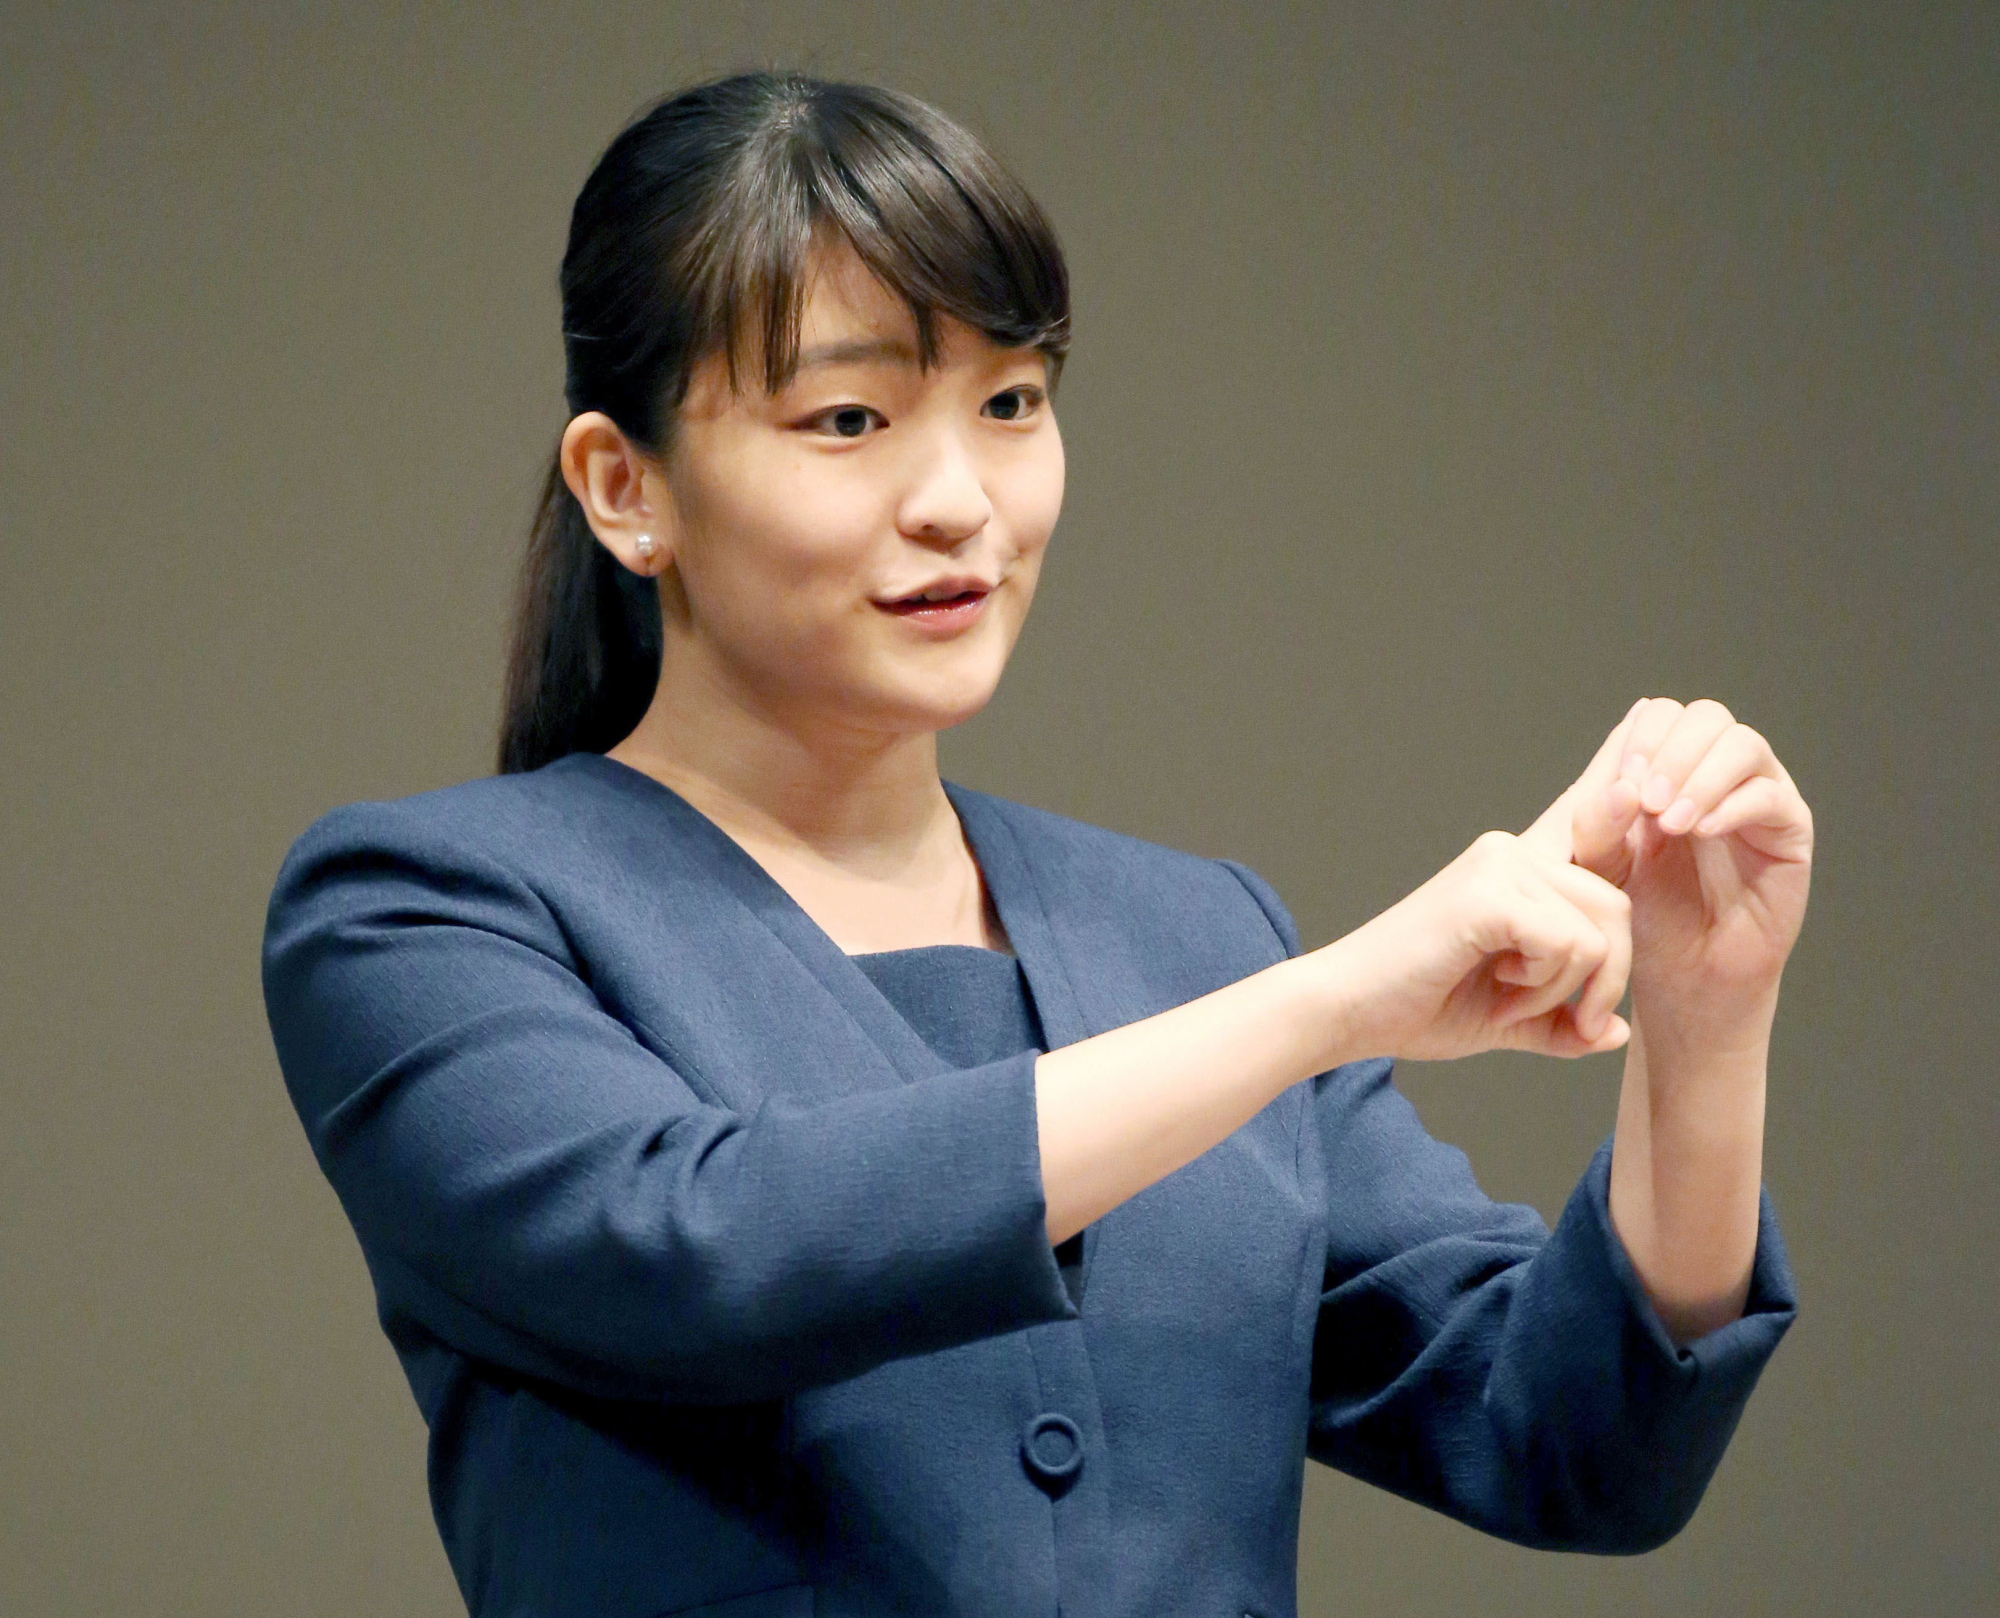 Princess Mako, the 25-year-old daughter of Prince Akishino and Princess Kiko, is set to be engaged to a former classmate from International Christian University, NHK reported. | POOL / VIA KYODO